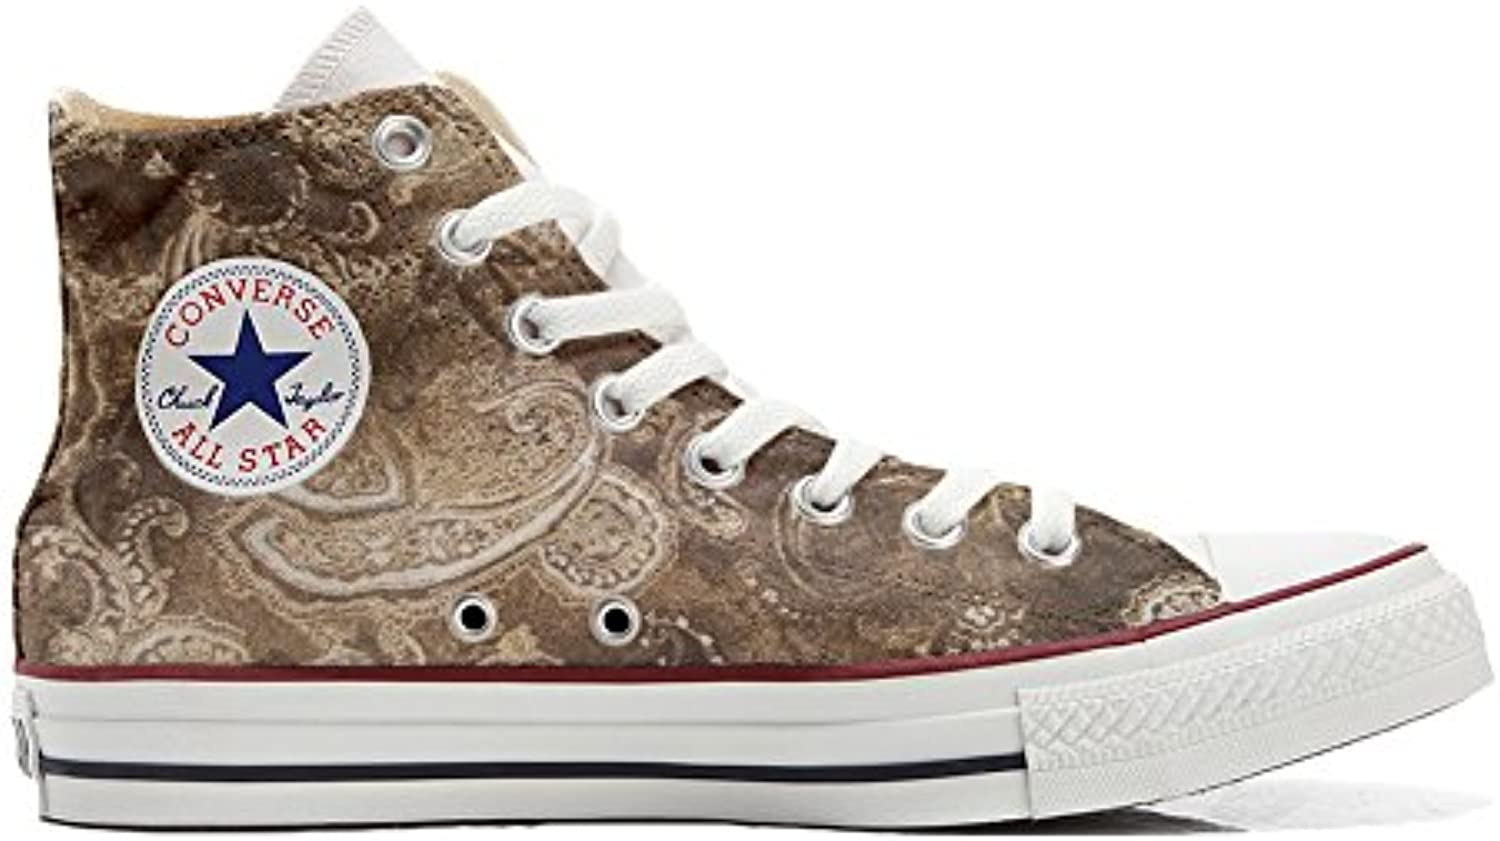 Converse All Star Zapatos Personalizados Unisex (Producto Handmade) White Cat with Blue Eyes -